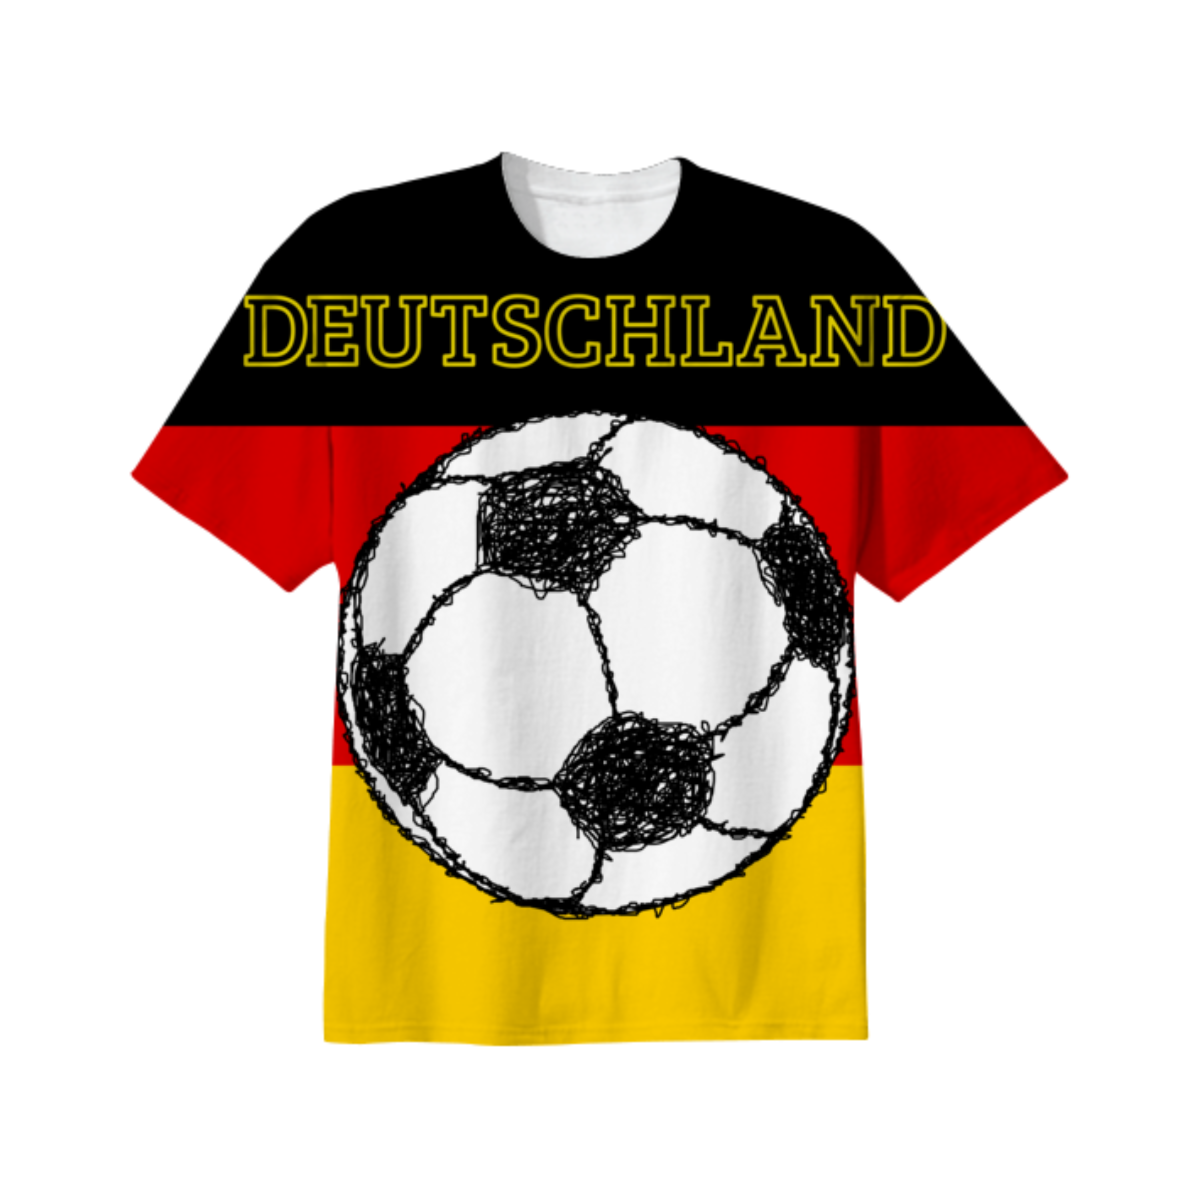 Deutschland flag | Football from Print All Over Me by piedaydesigns.  The flag of Germany, tricolour, displaying the national colours of Germany: black, red, and gold. Im the middle there is a sketch / scribble style picture of a black and white, soccer ball / football. The text reads Deutschland.